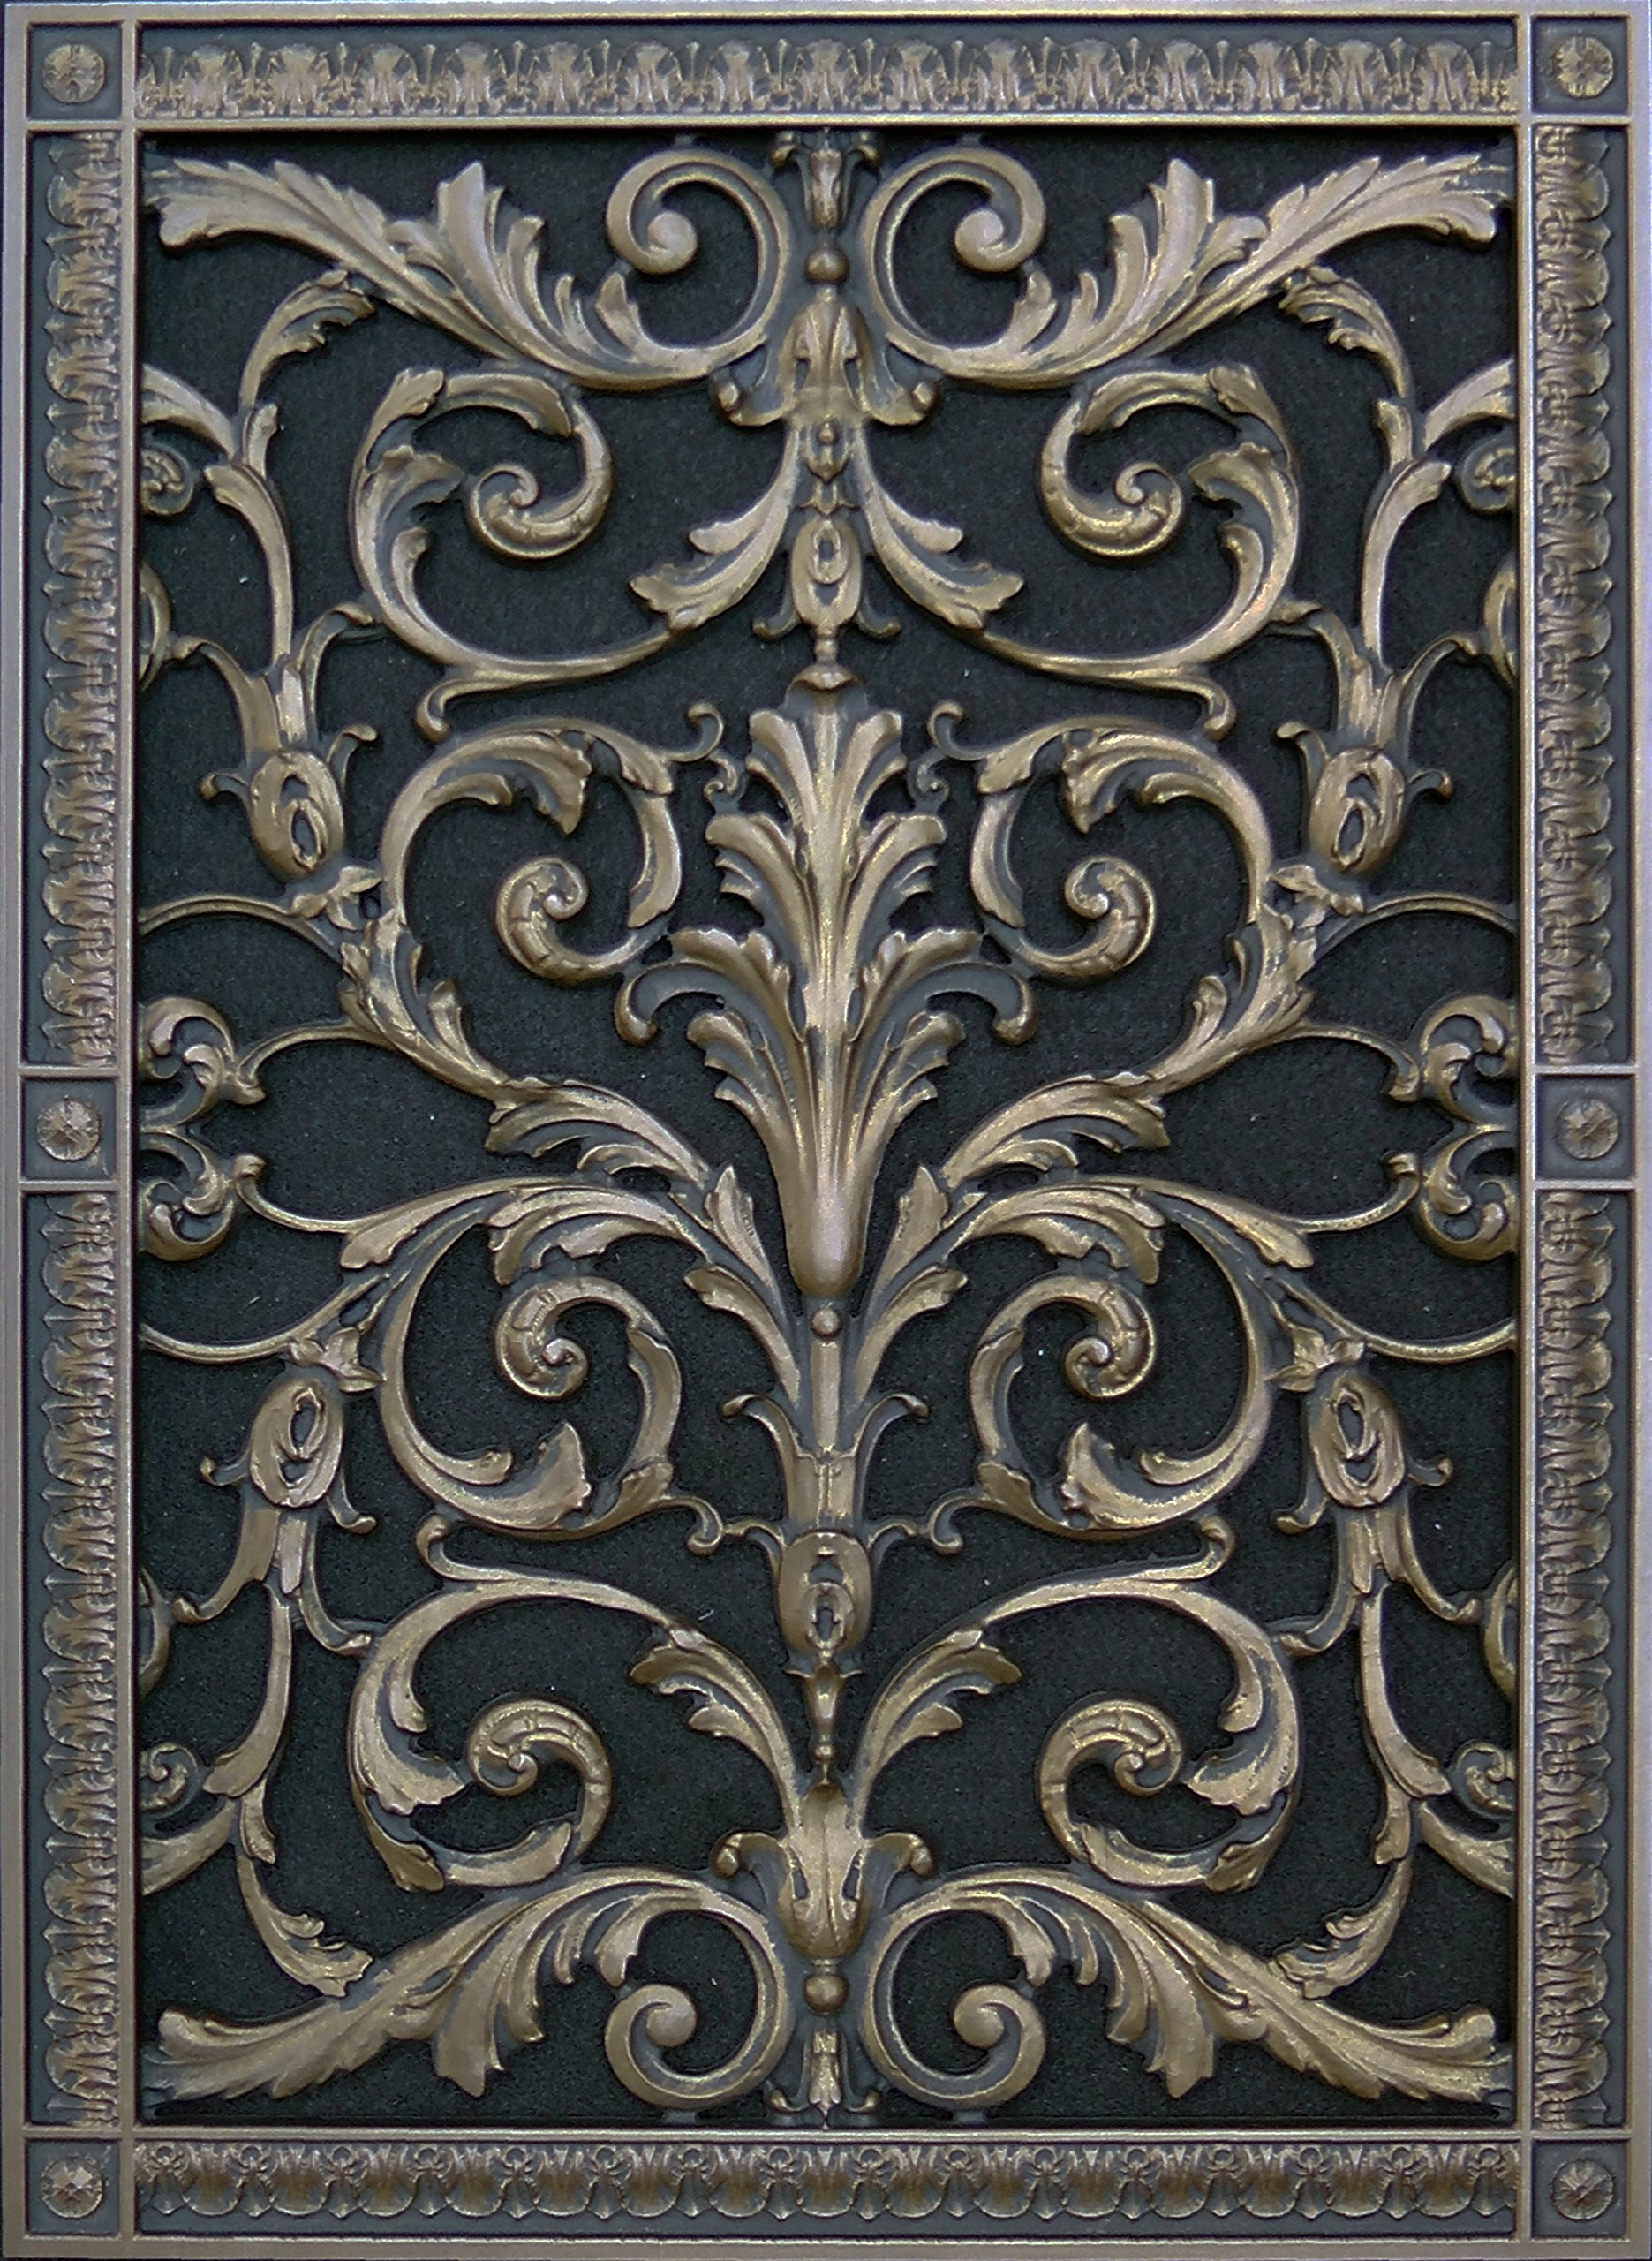 "Decorative Vent Cover, Grille, made of Urethane Resin in Louis XIV, French style fits over a 20""x 14"", Total size, 22"" by 16"", for wall & ceiling installation only. (not for floors) (Old Wood) by Beaux-Artes, Ltd."